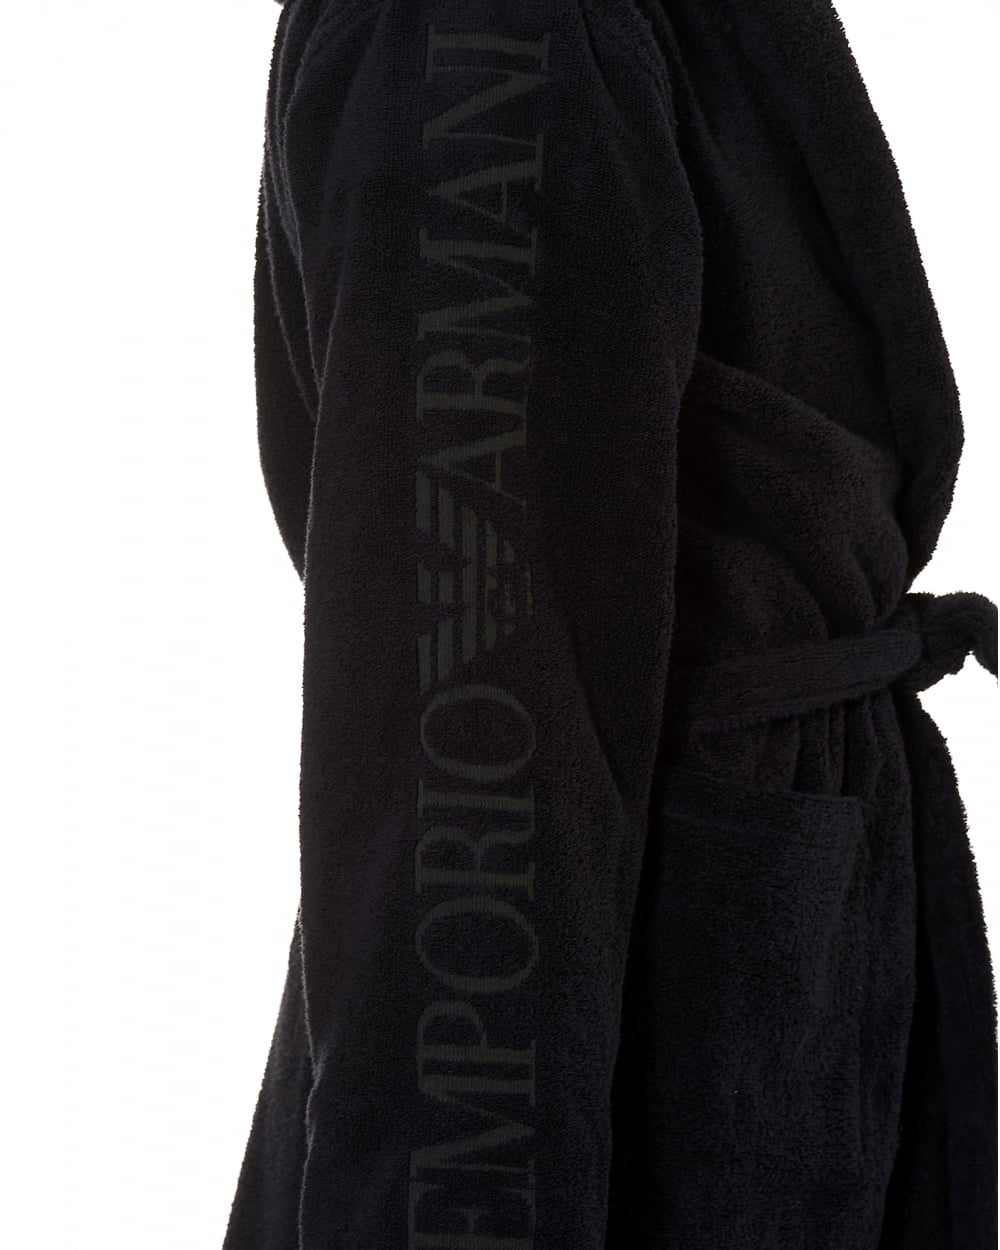 Emporio Armani Mens Hooded Robe, Branding Navy Blue Dressing Gown